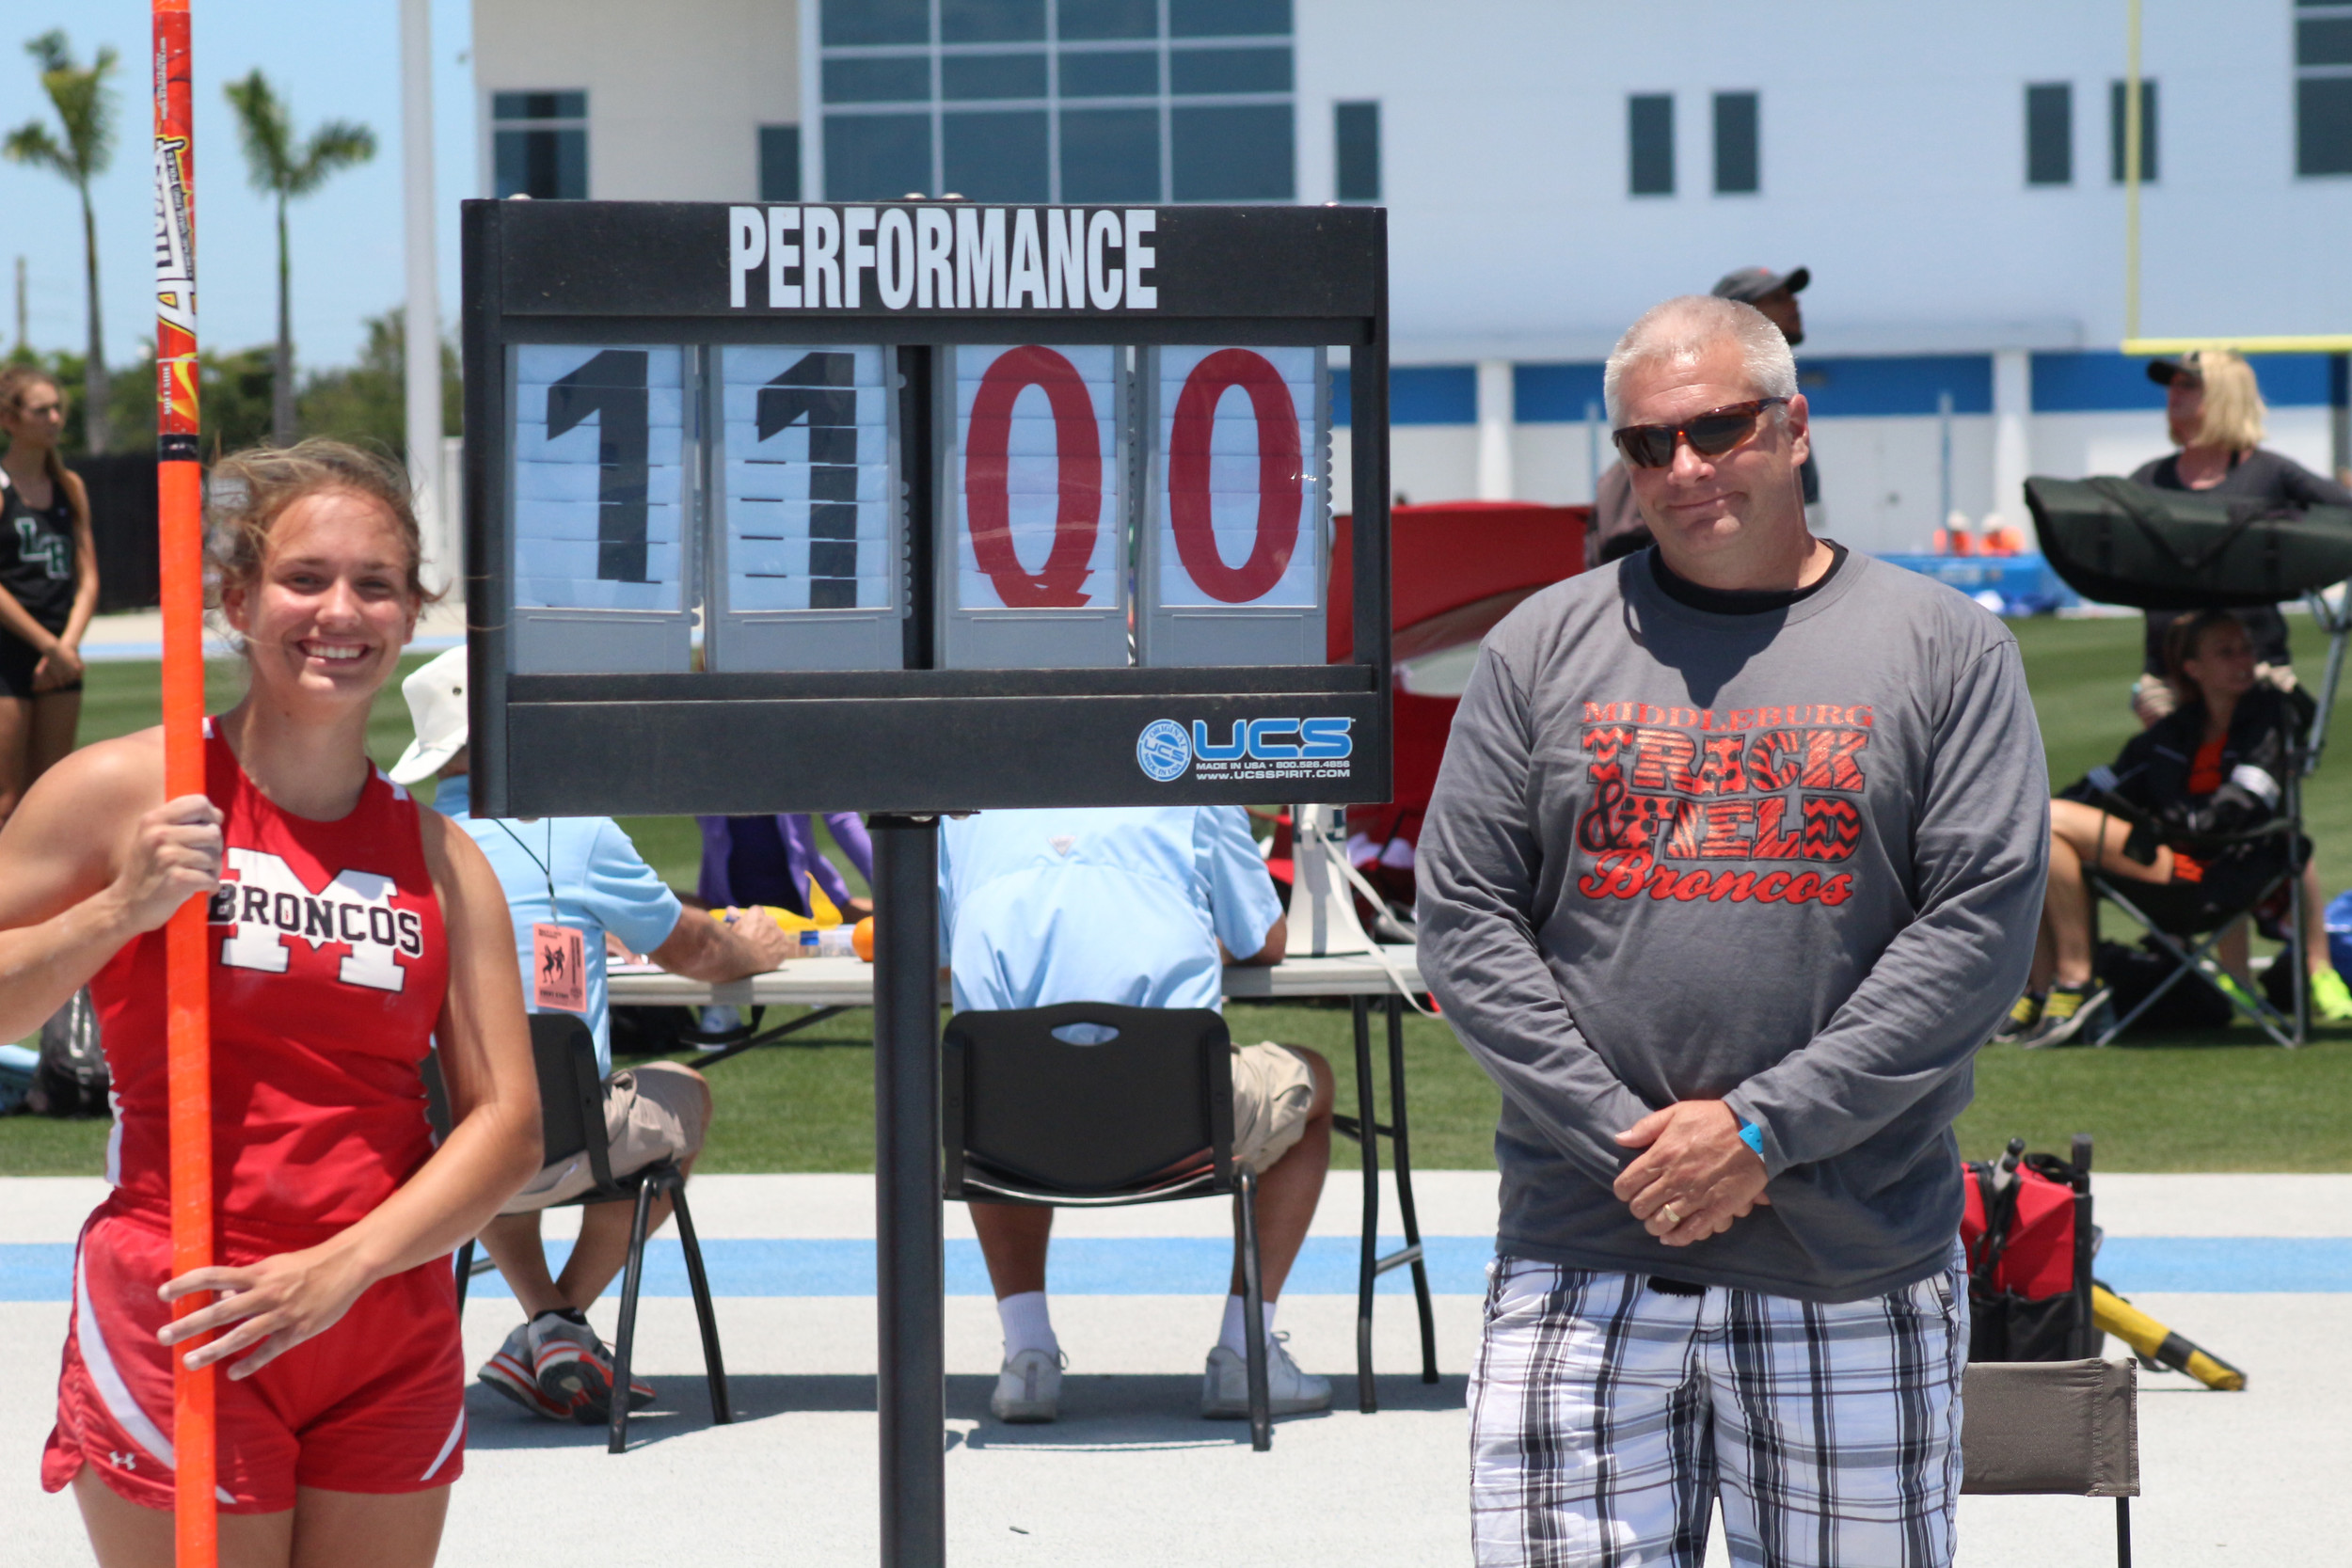 Class 3A girls pole vault champion Samantha Stelmaszek, left, smiles with Middleburg High track coach Craig Martin after she captured Middleburg's first-ever gold medal on Friday.